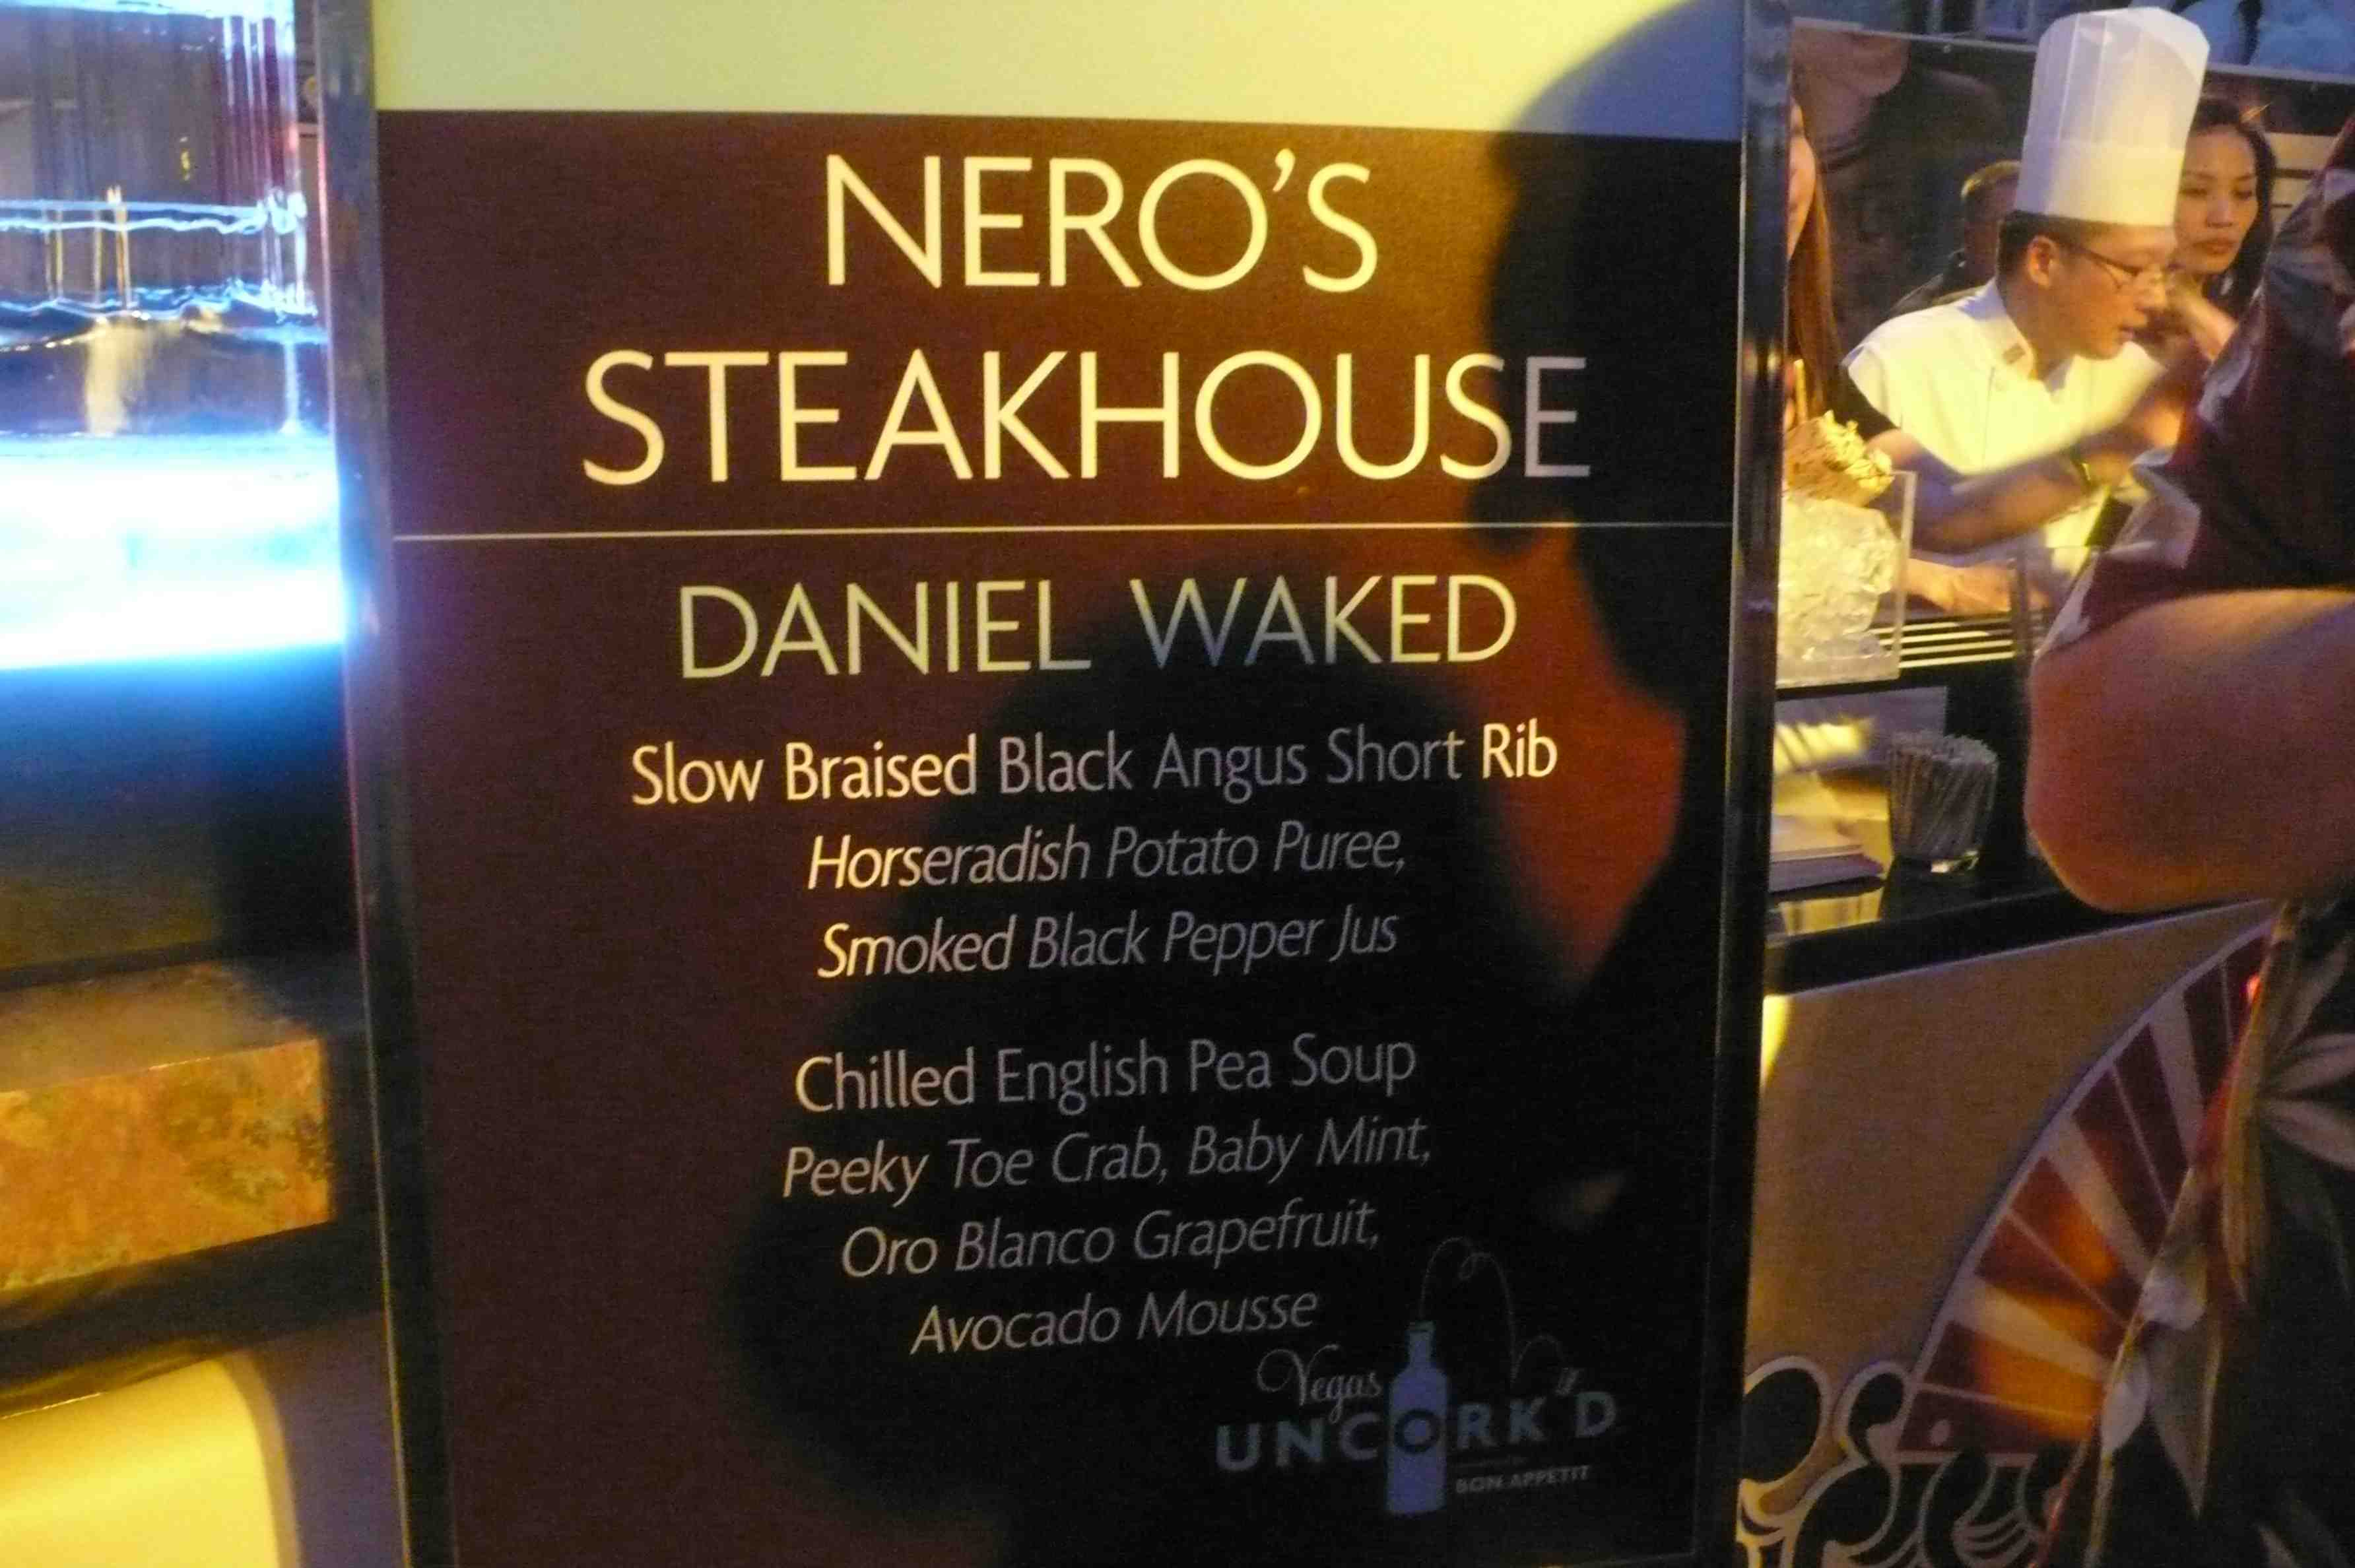 Nero's Steakhouse, Caesars